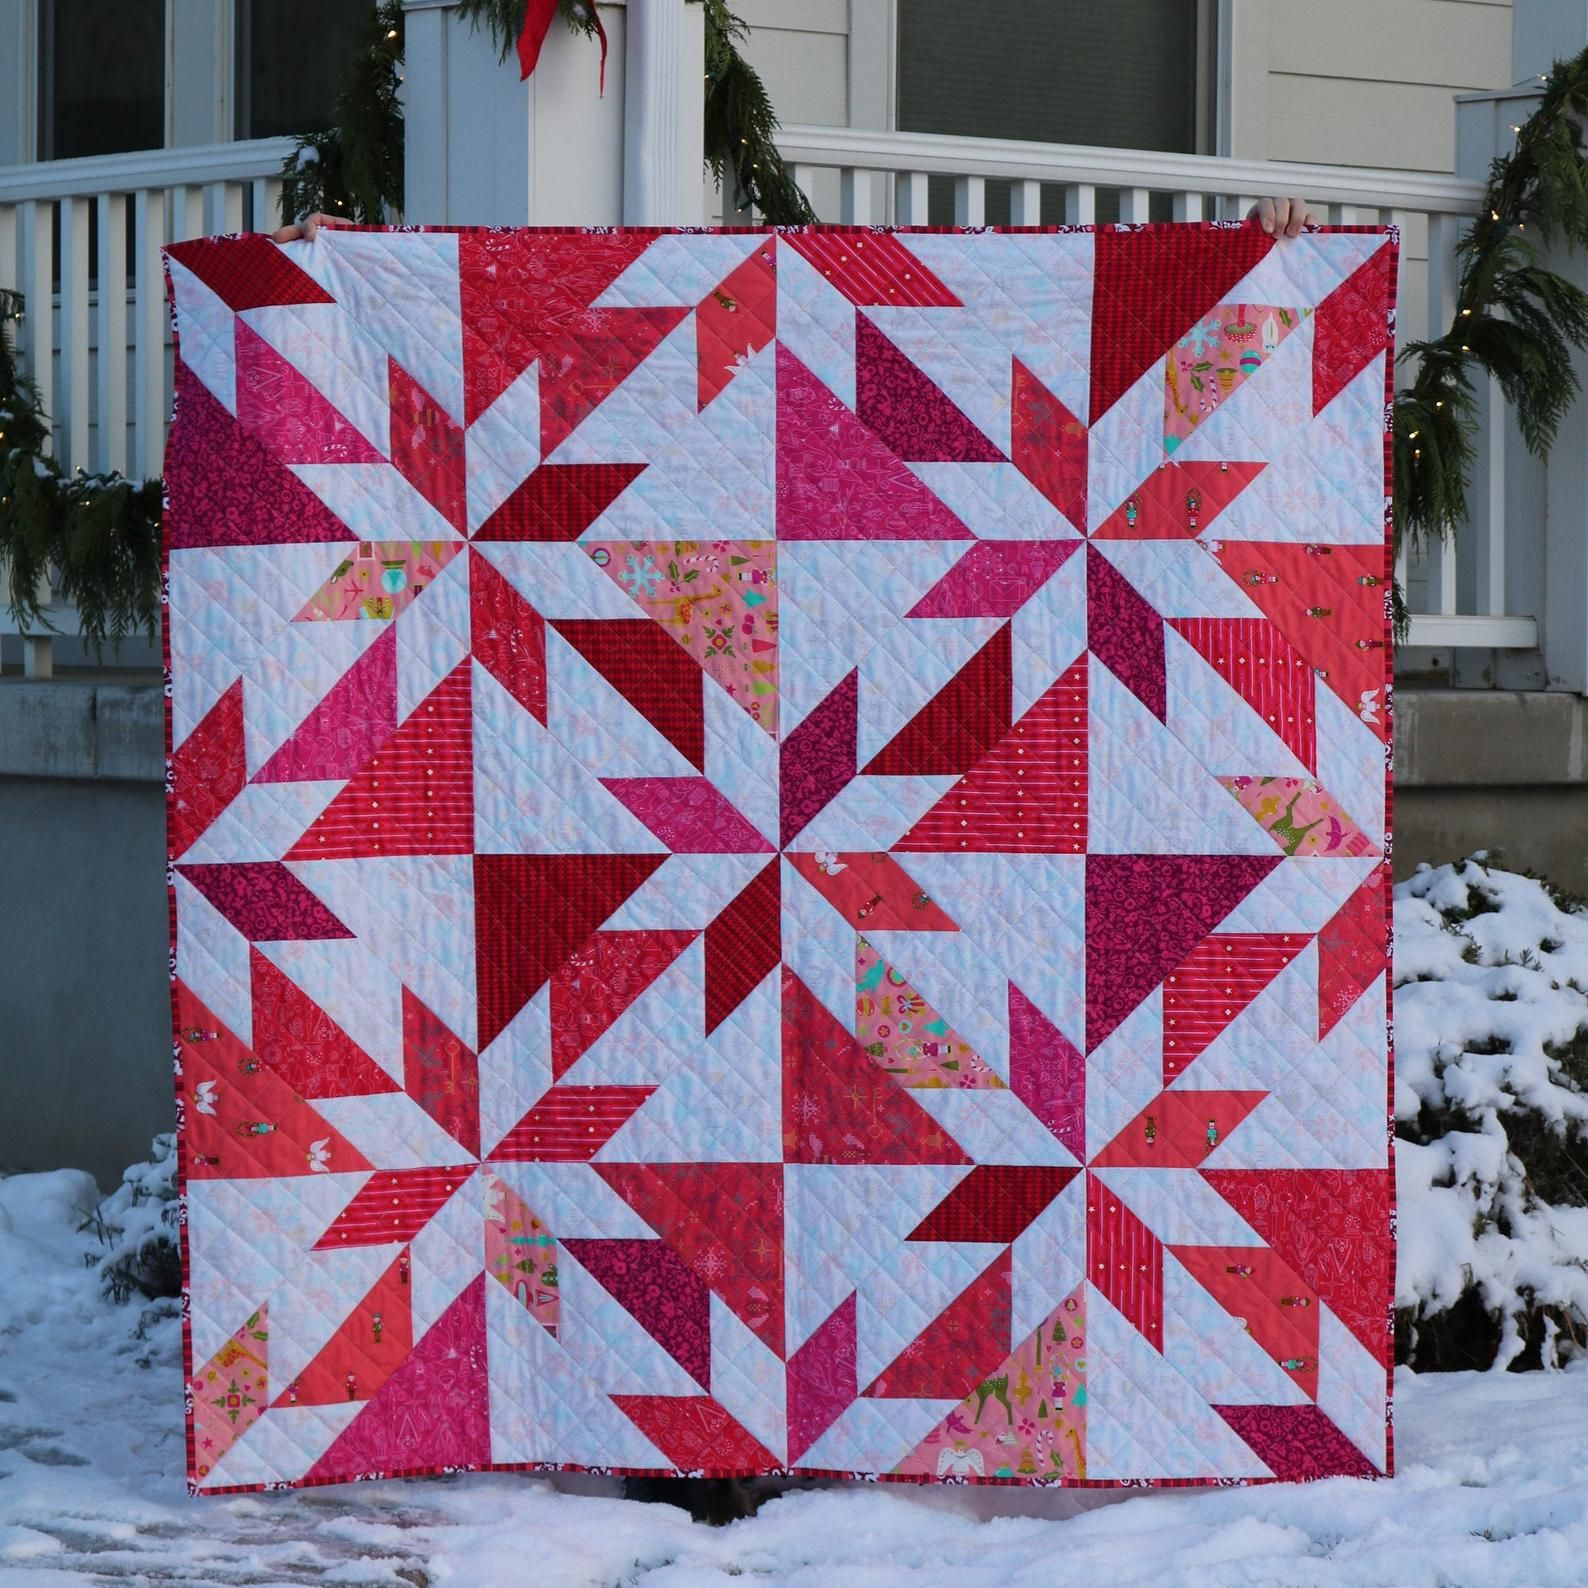 Giant hunters star quilt pattern etsy in 2020 hunters